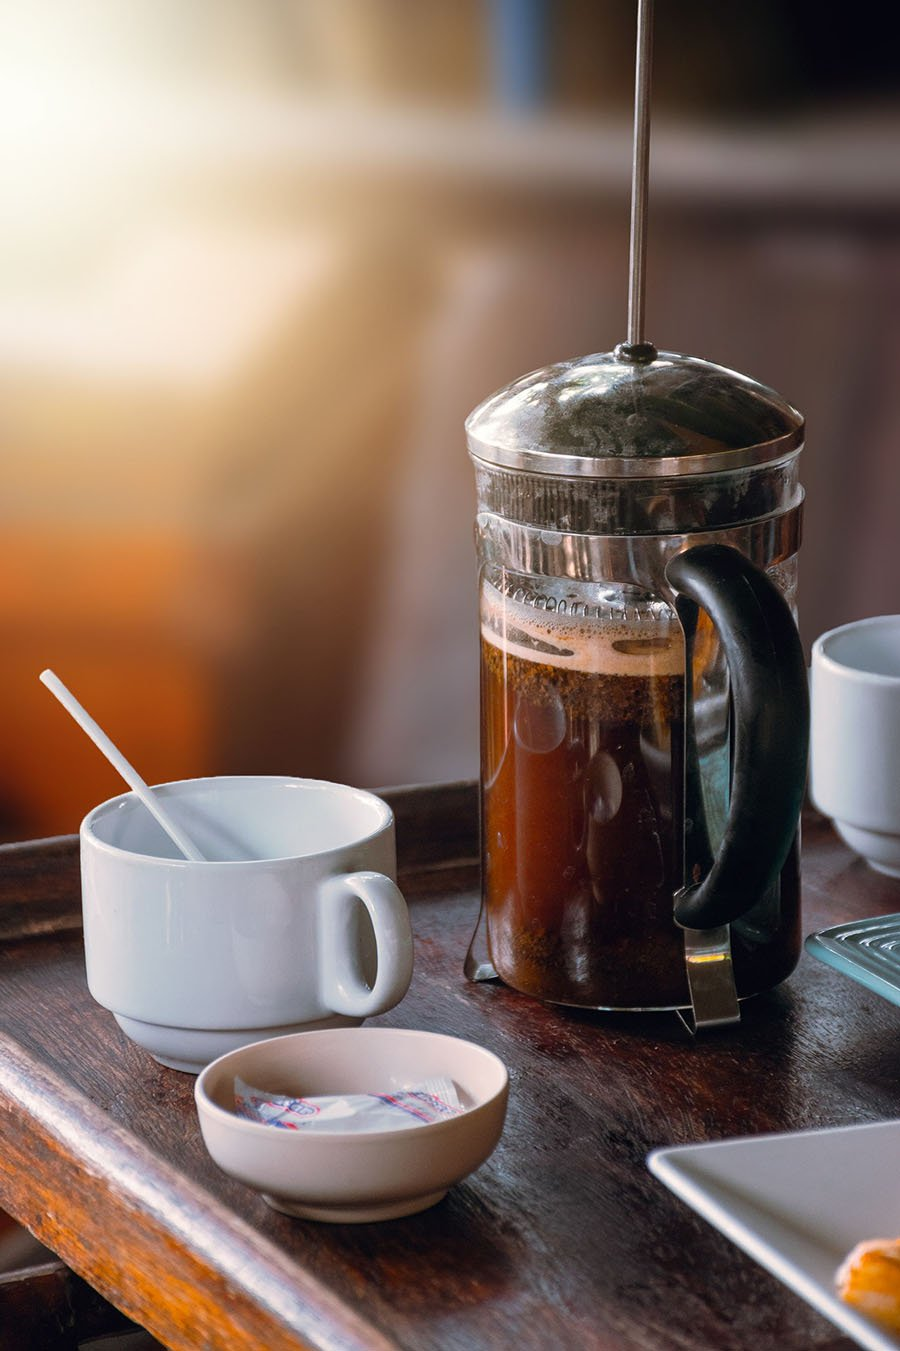 Coffee made with a French press is rich and flavorful.